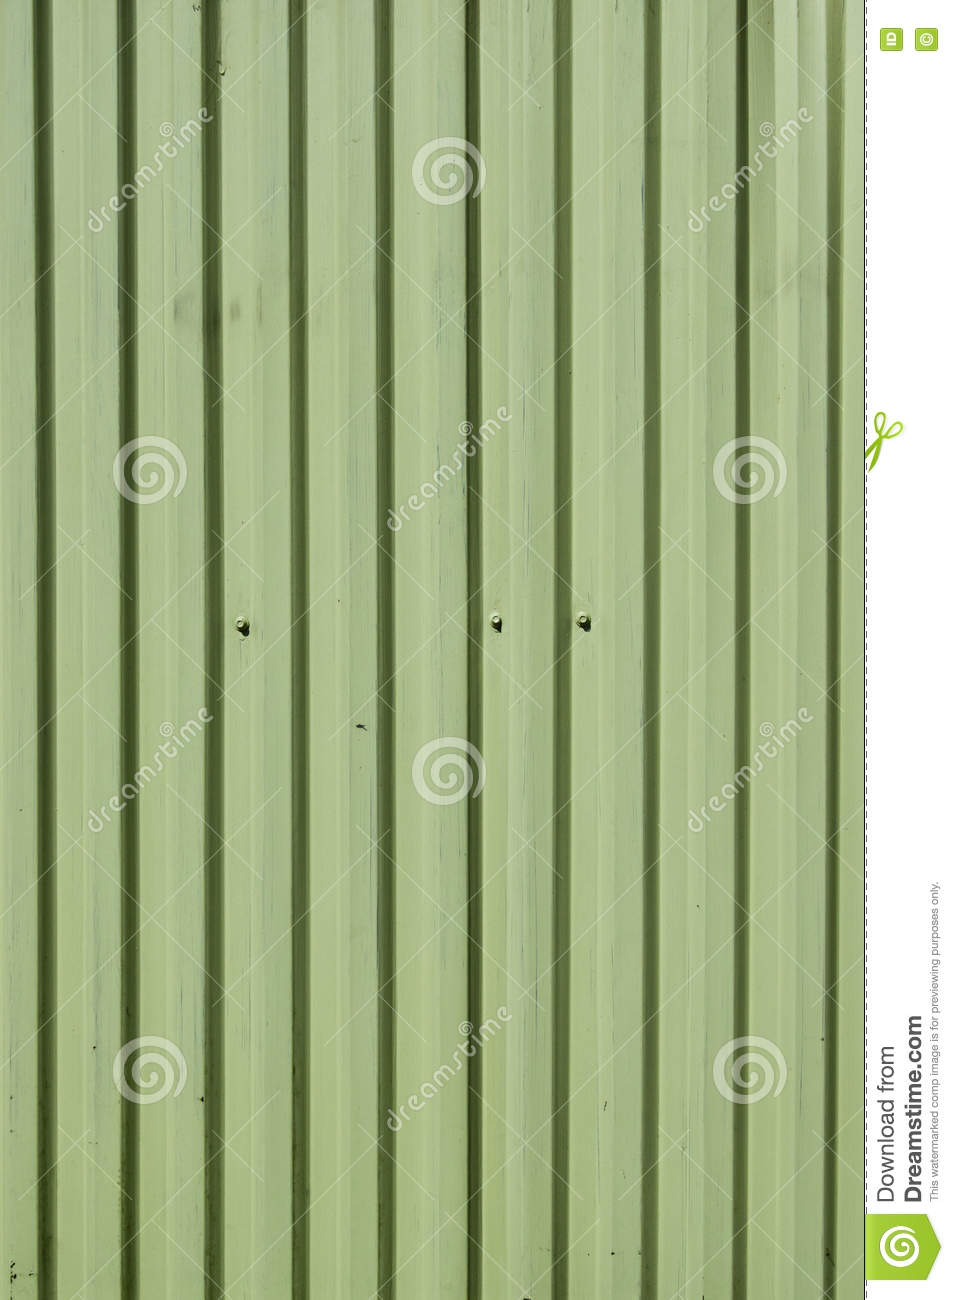 Metal Siding With Vertical Lines Stock Photo - Image of